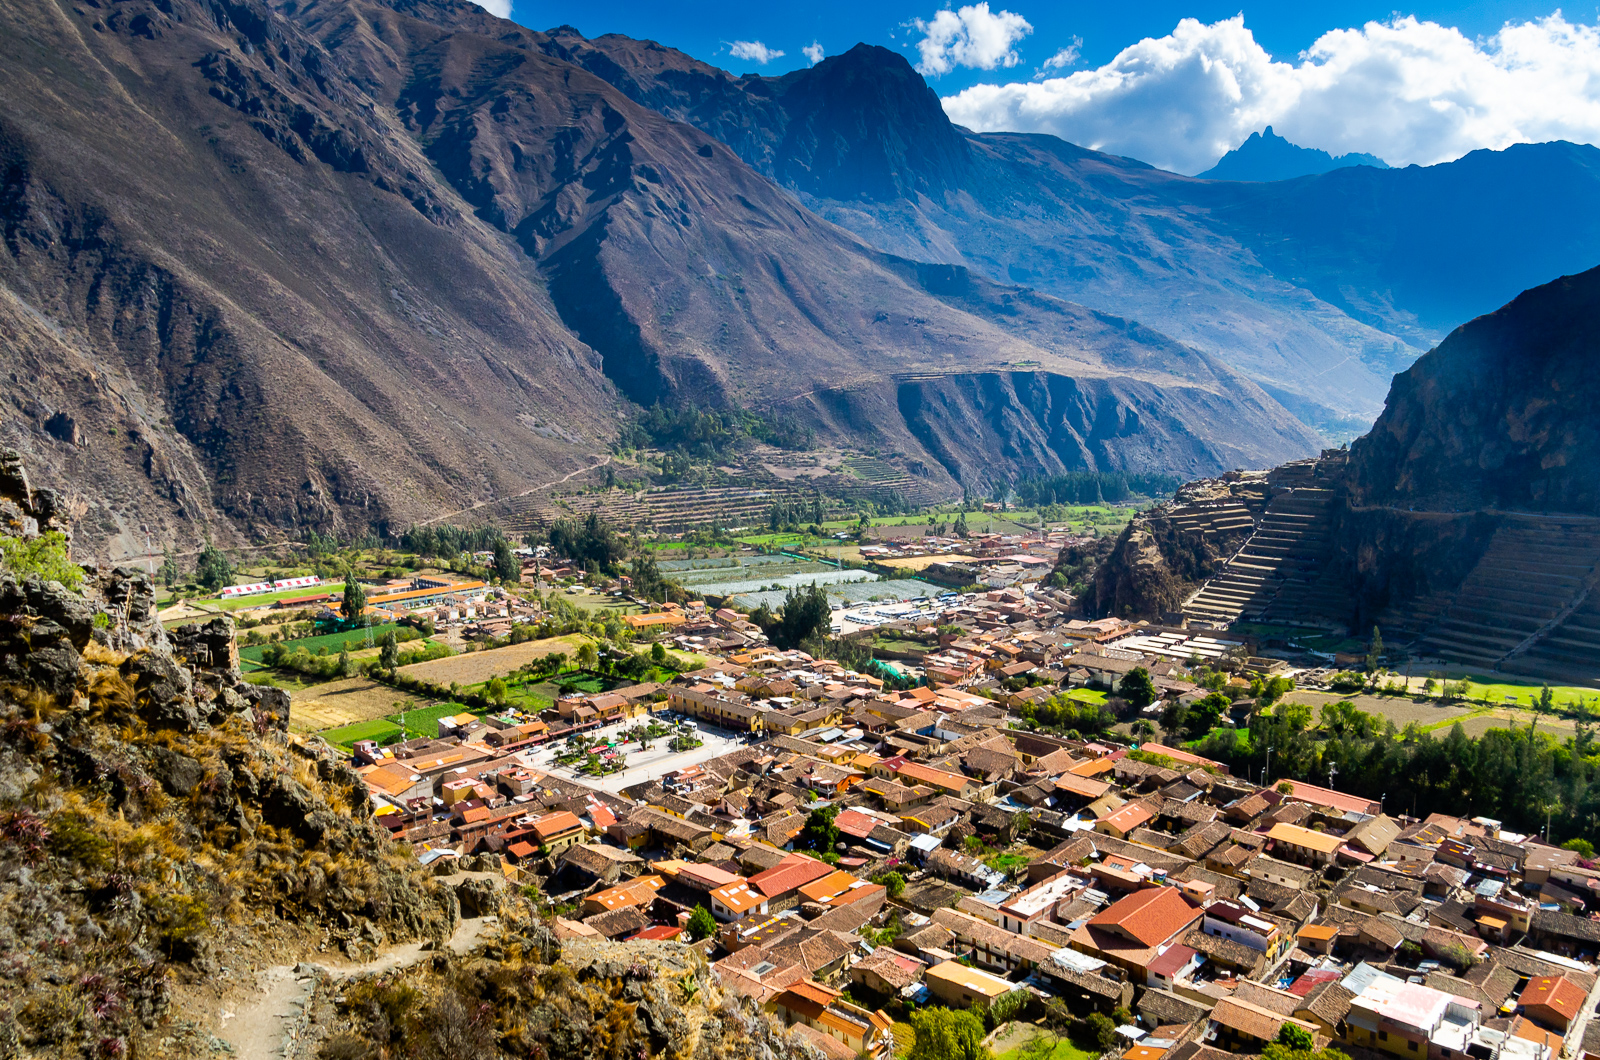 Ollantaytambo: The Perfect Stopover in the Sacred Valley